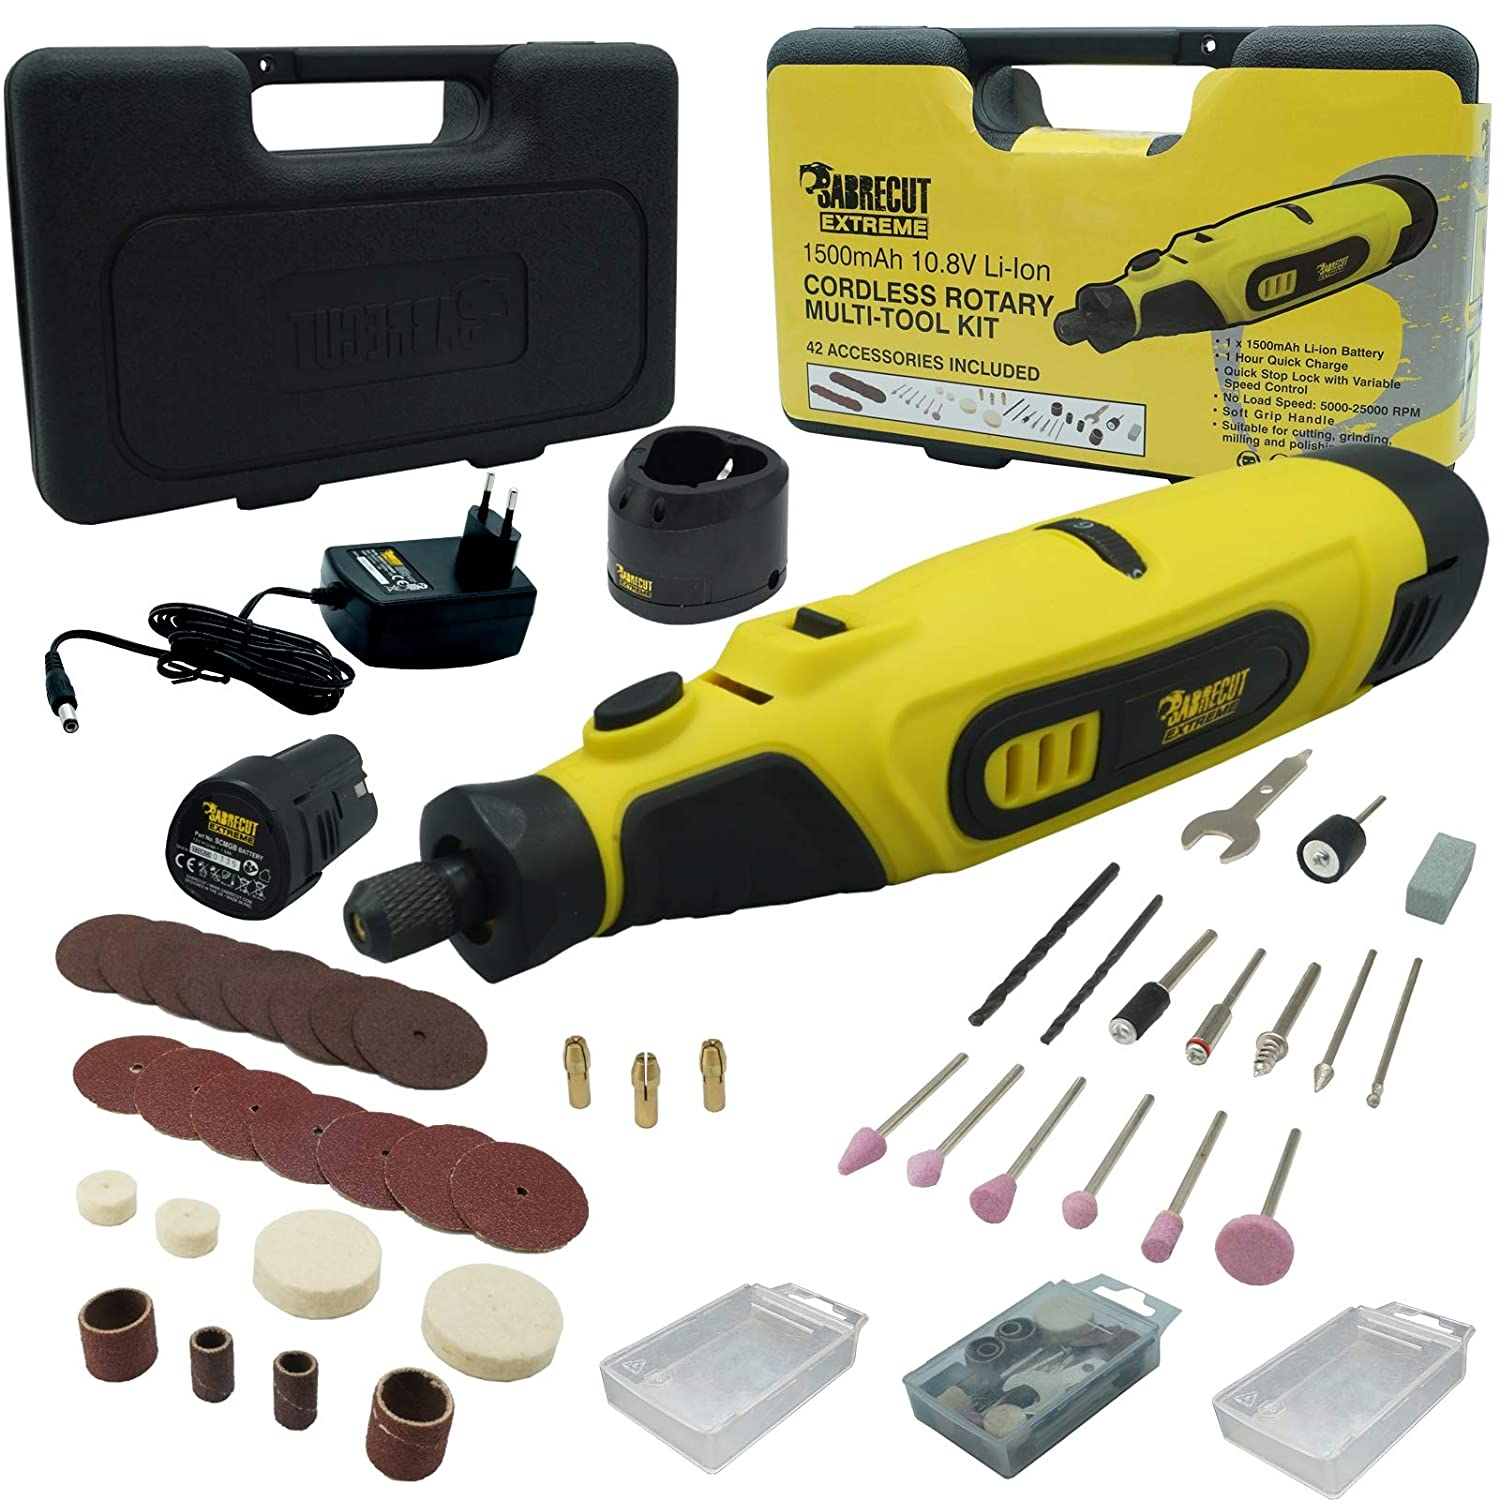 SabreCut CraftMate SCMG002EU Lithium Ion 10.8v Cordless Rotary Tool Multipurpose with 42 Accessories Included